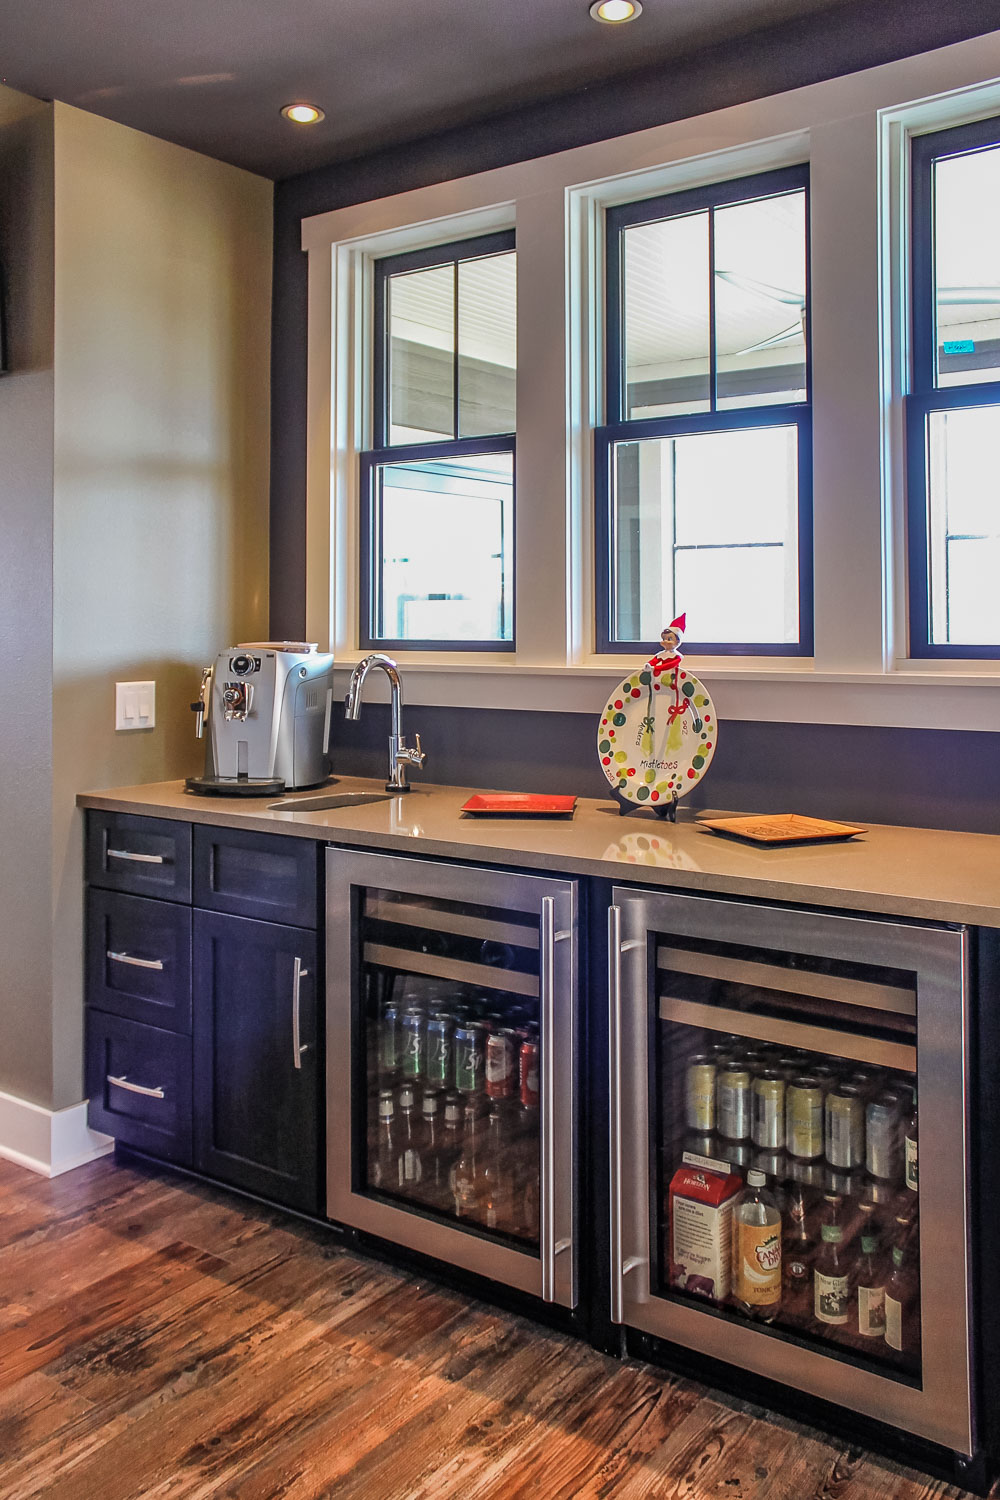 - This butlers pantry area includes an espresso maker, sink, and dual under counter beverage refrigerators.